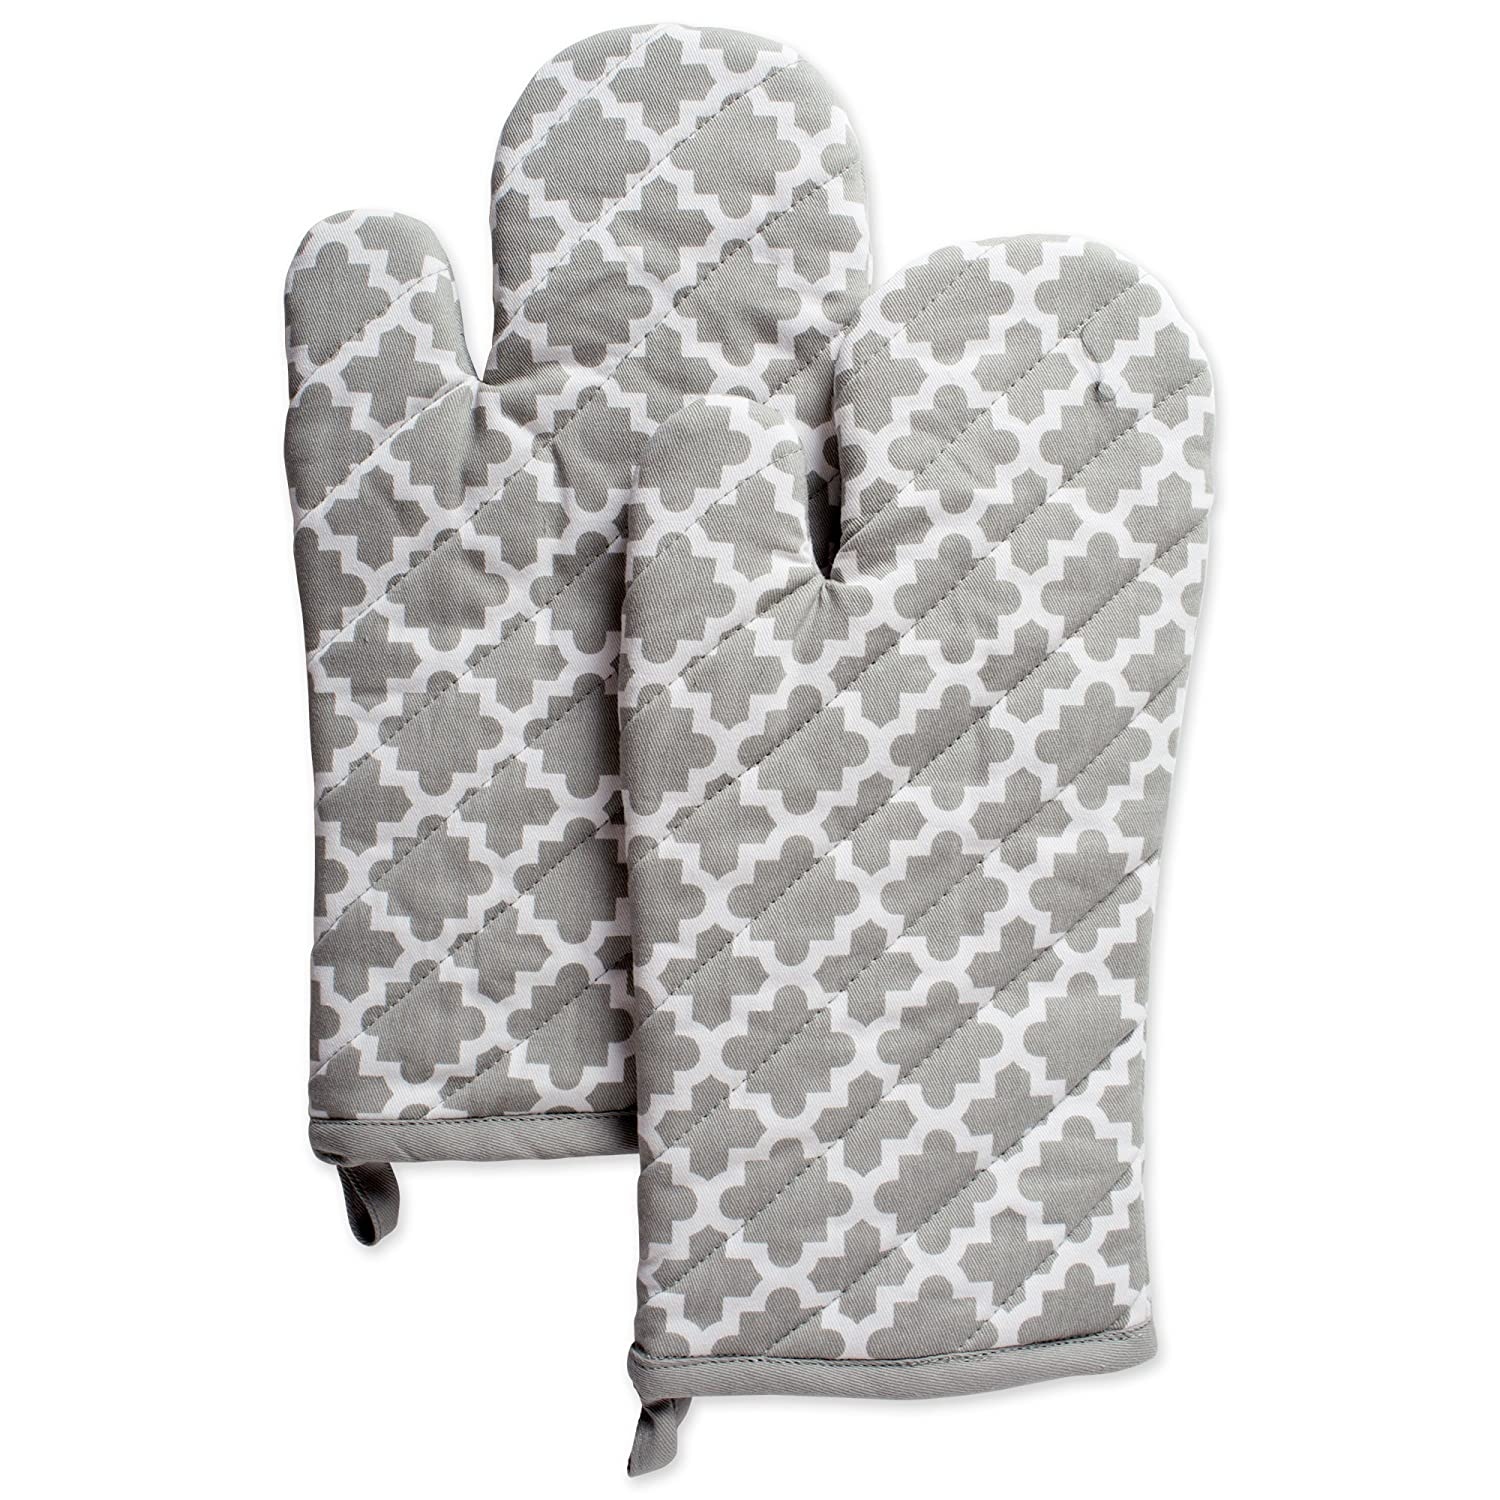 "DII Cotton Lattice Oven Mitts, 13 x 7"" Set of 2, Machine Washable and Heat Resistant Baking Glove for Everyday Kitchen Cooking-Gray"